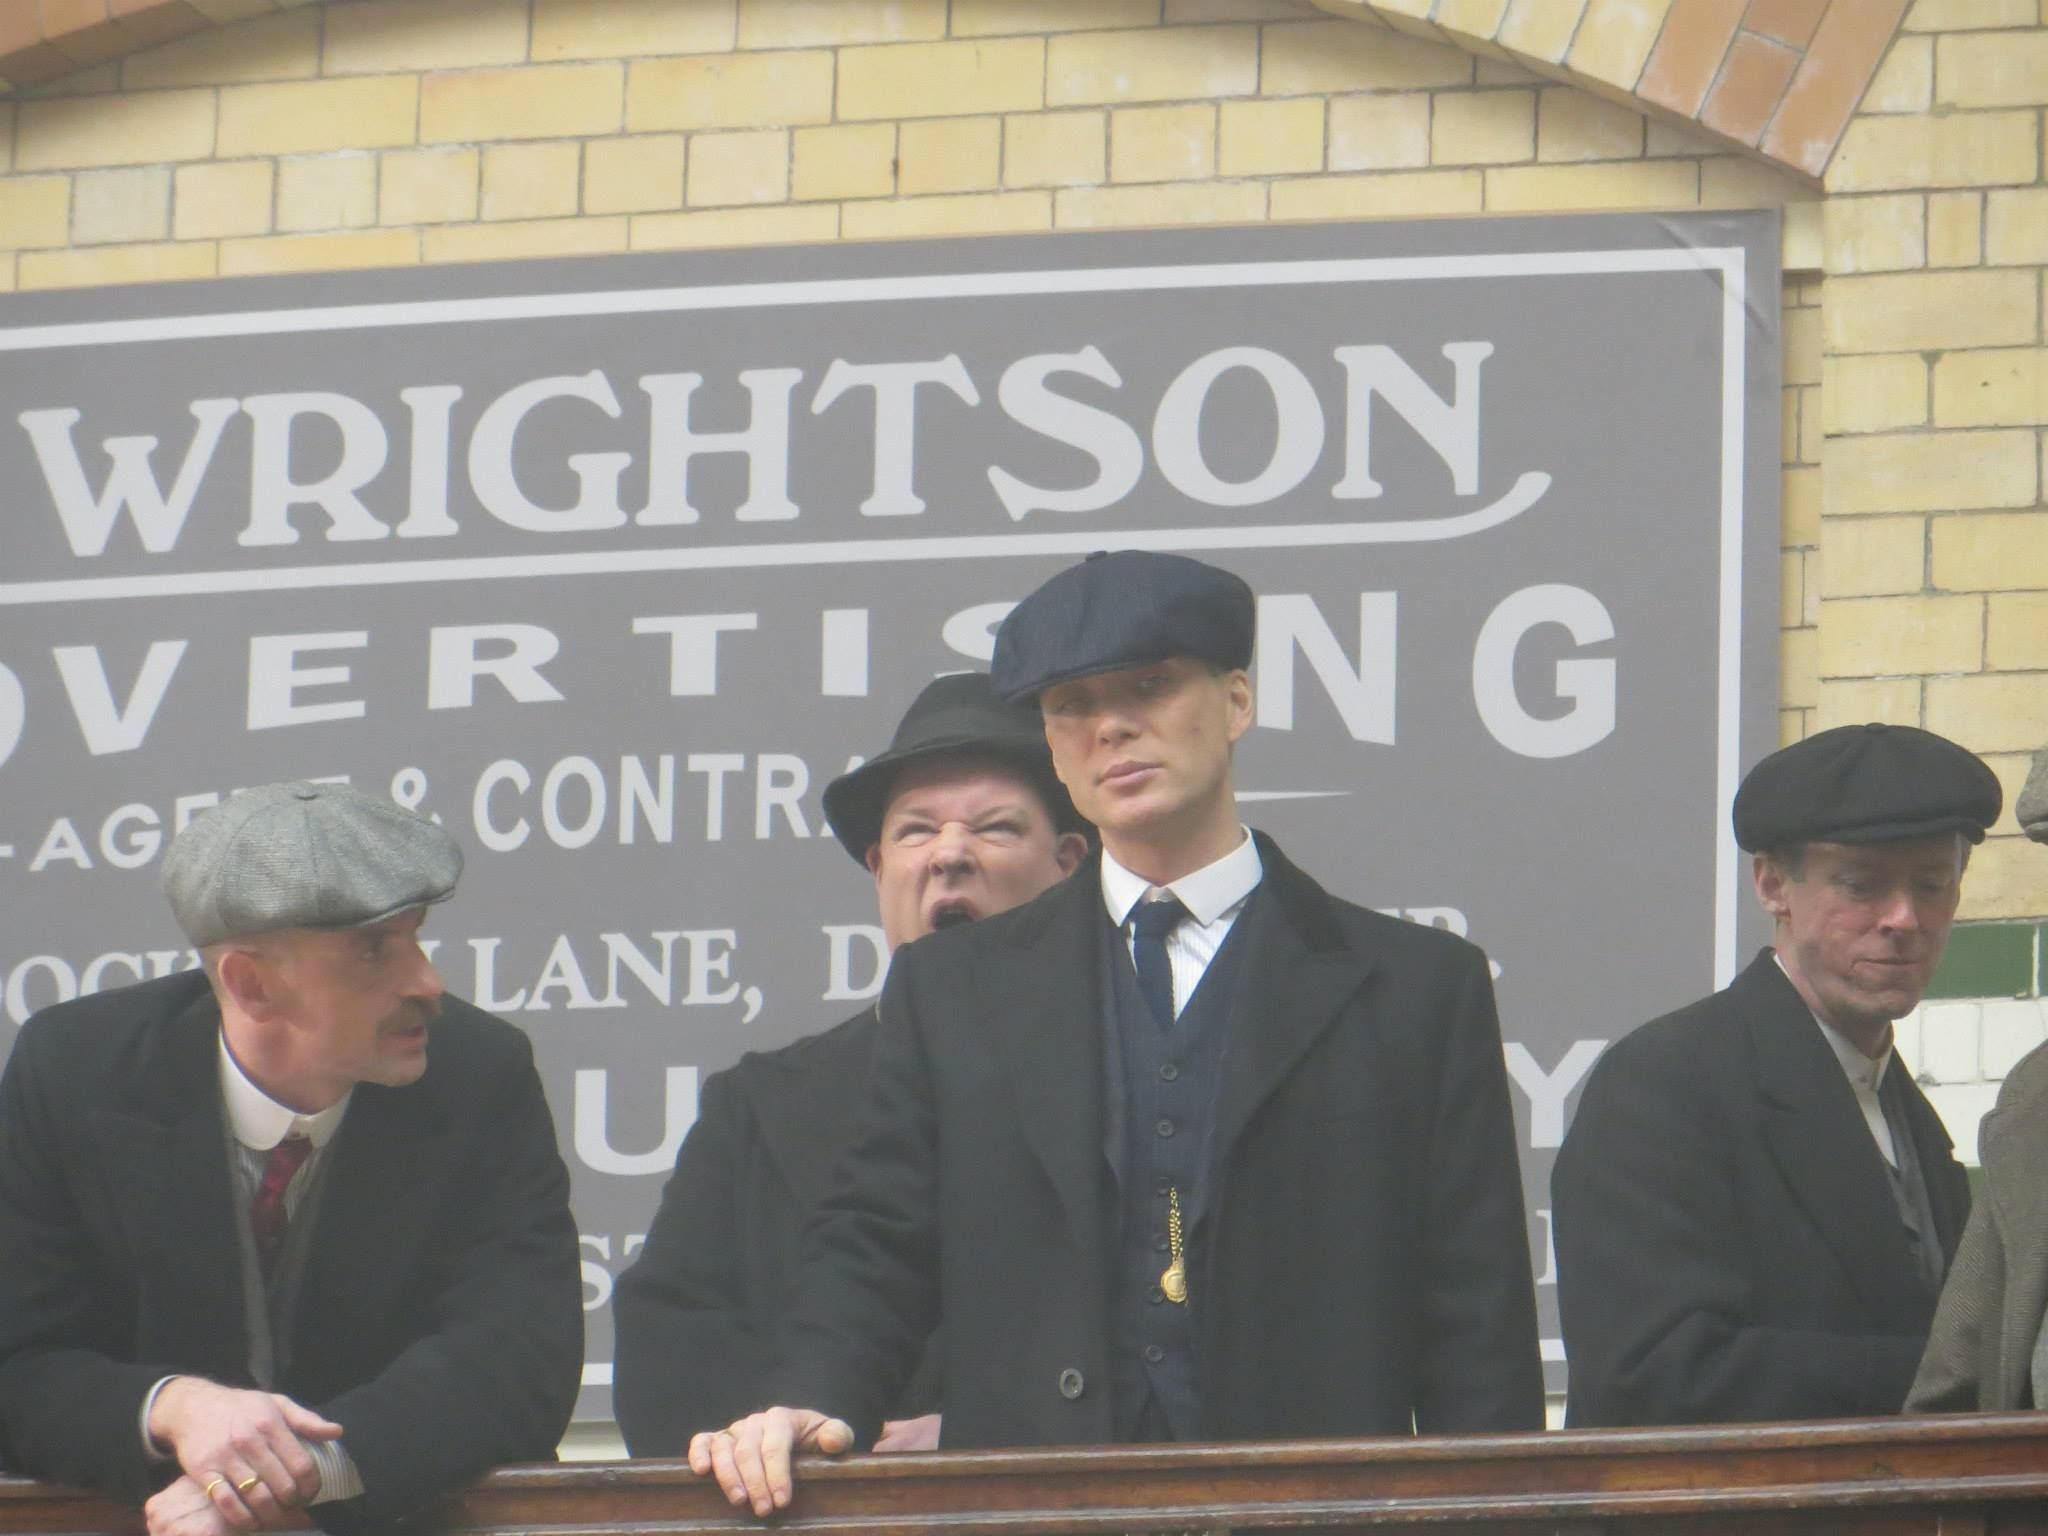 Filming At Victoria Baths Manchester Peaky Blinders Cillian Murphy Victoria Baths Manchester